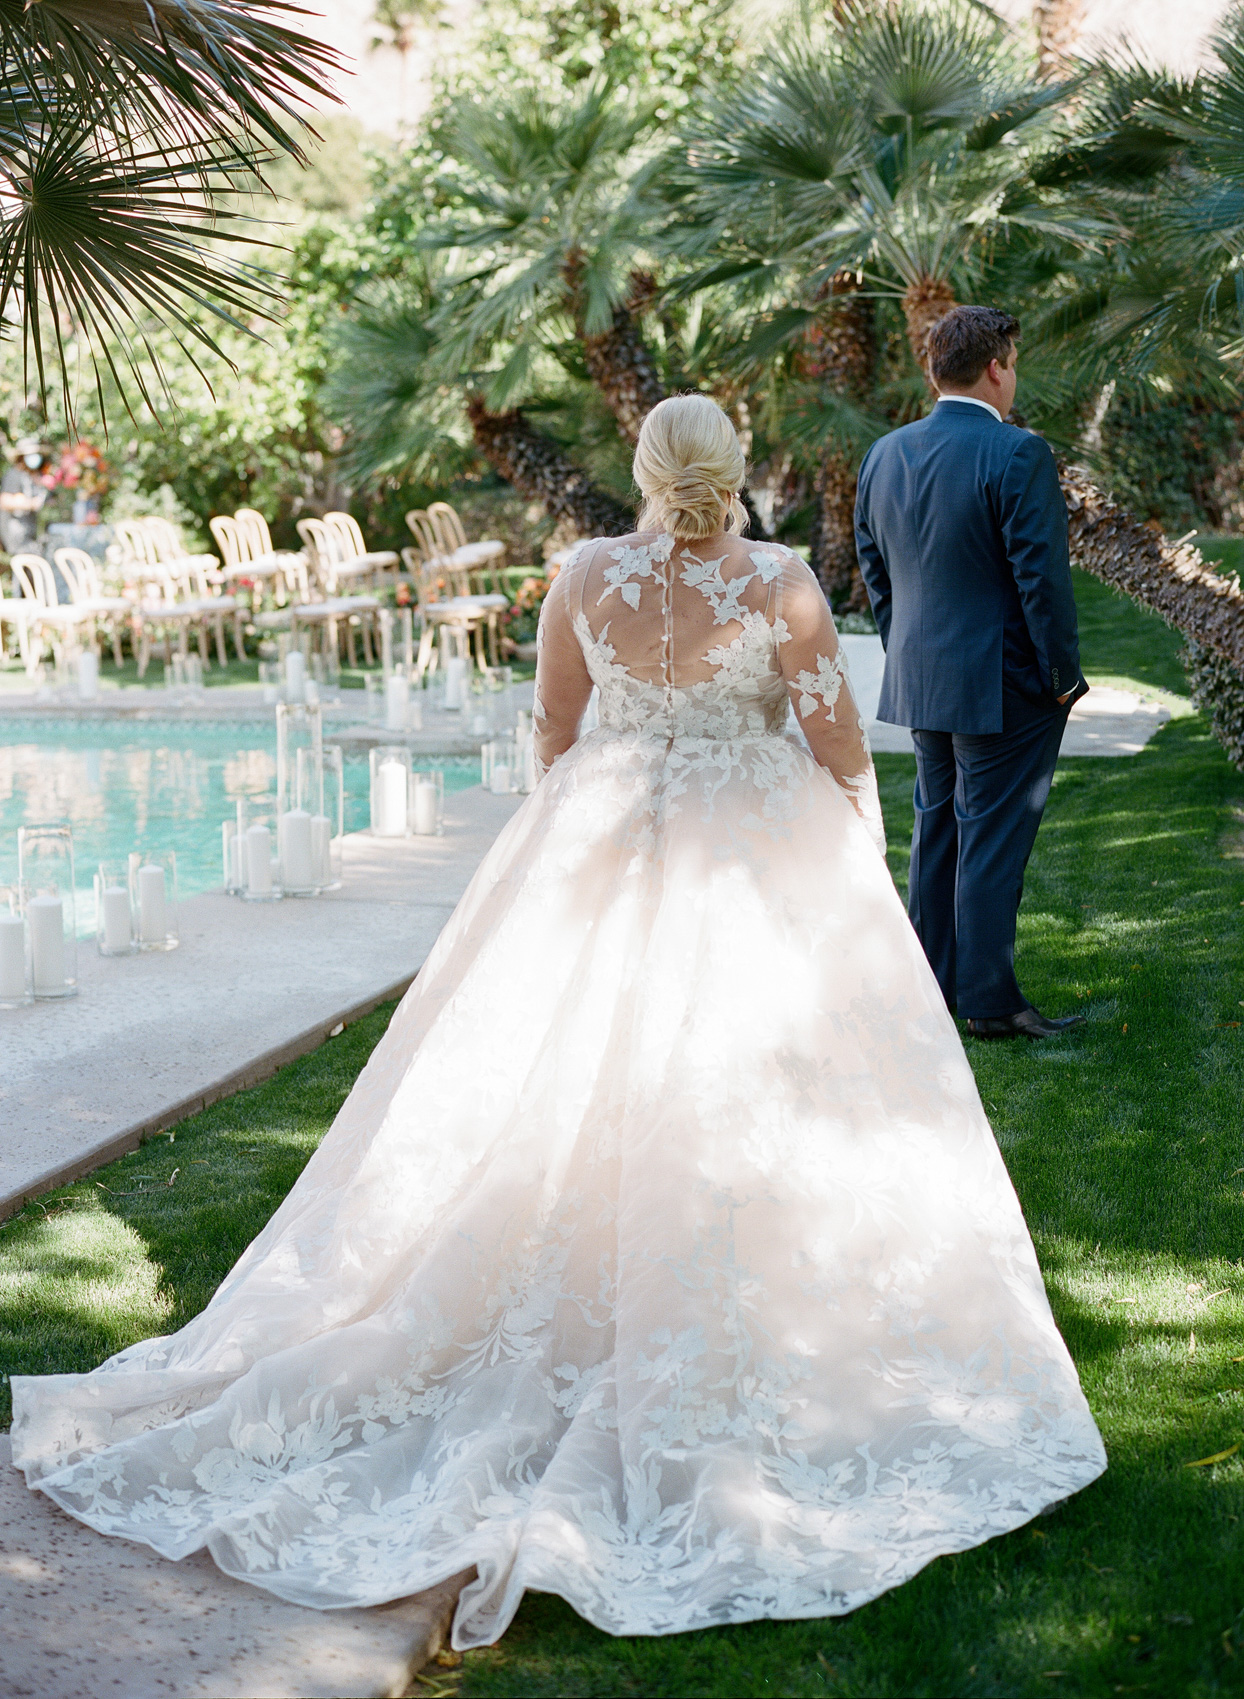 bride and groom first look by pool